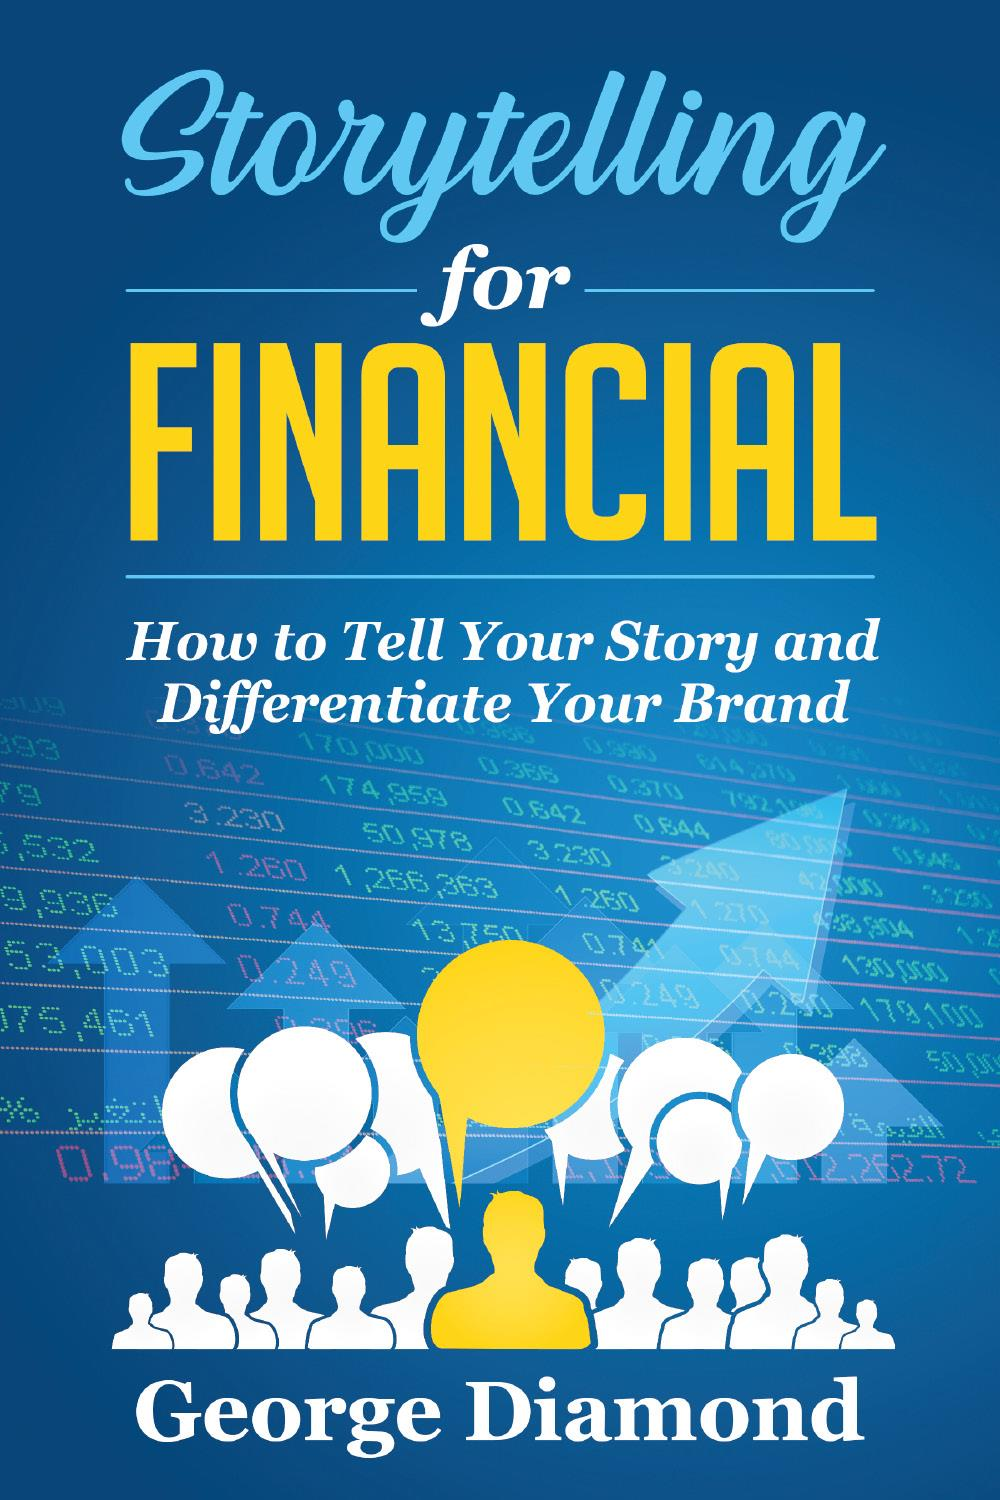 Storytelling For Financial. How to Tell Your Story and Differentiate Your Brand